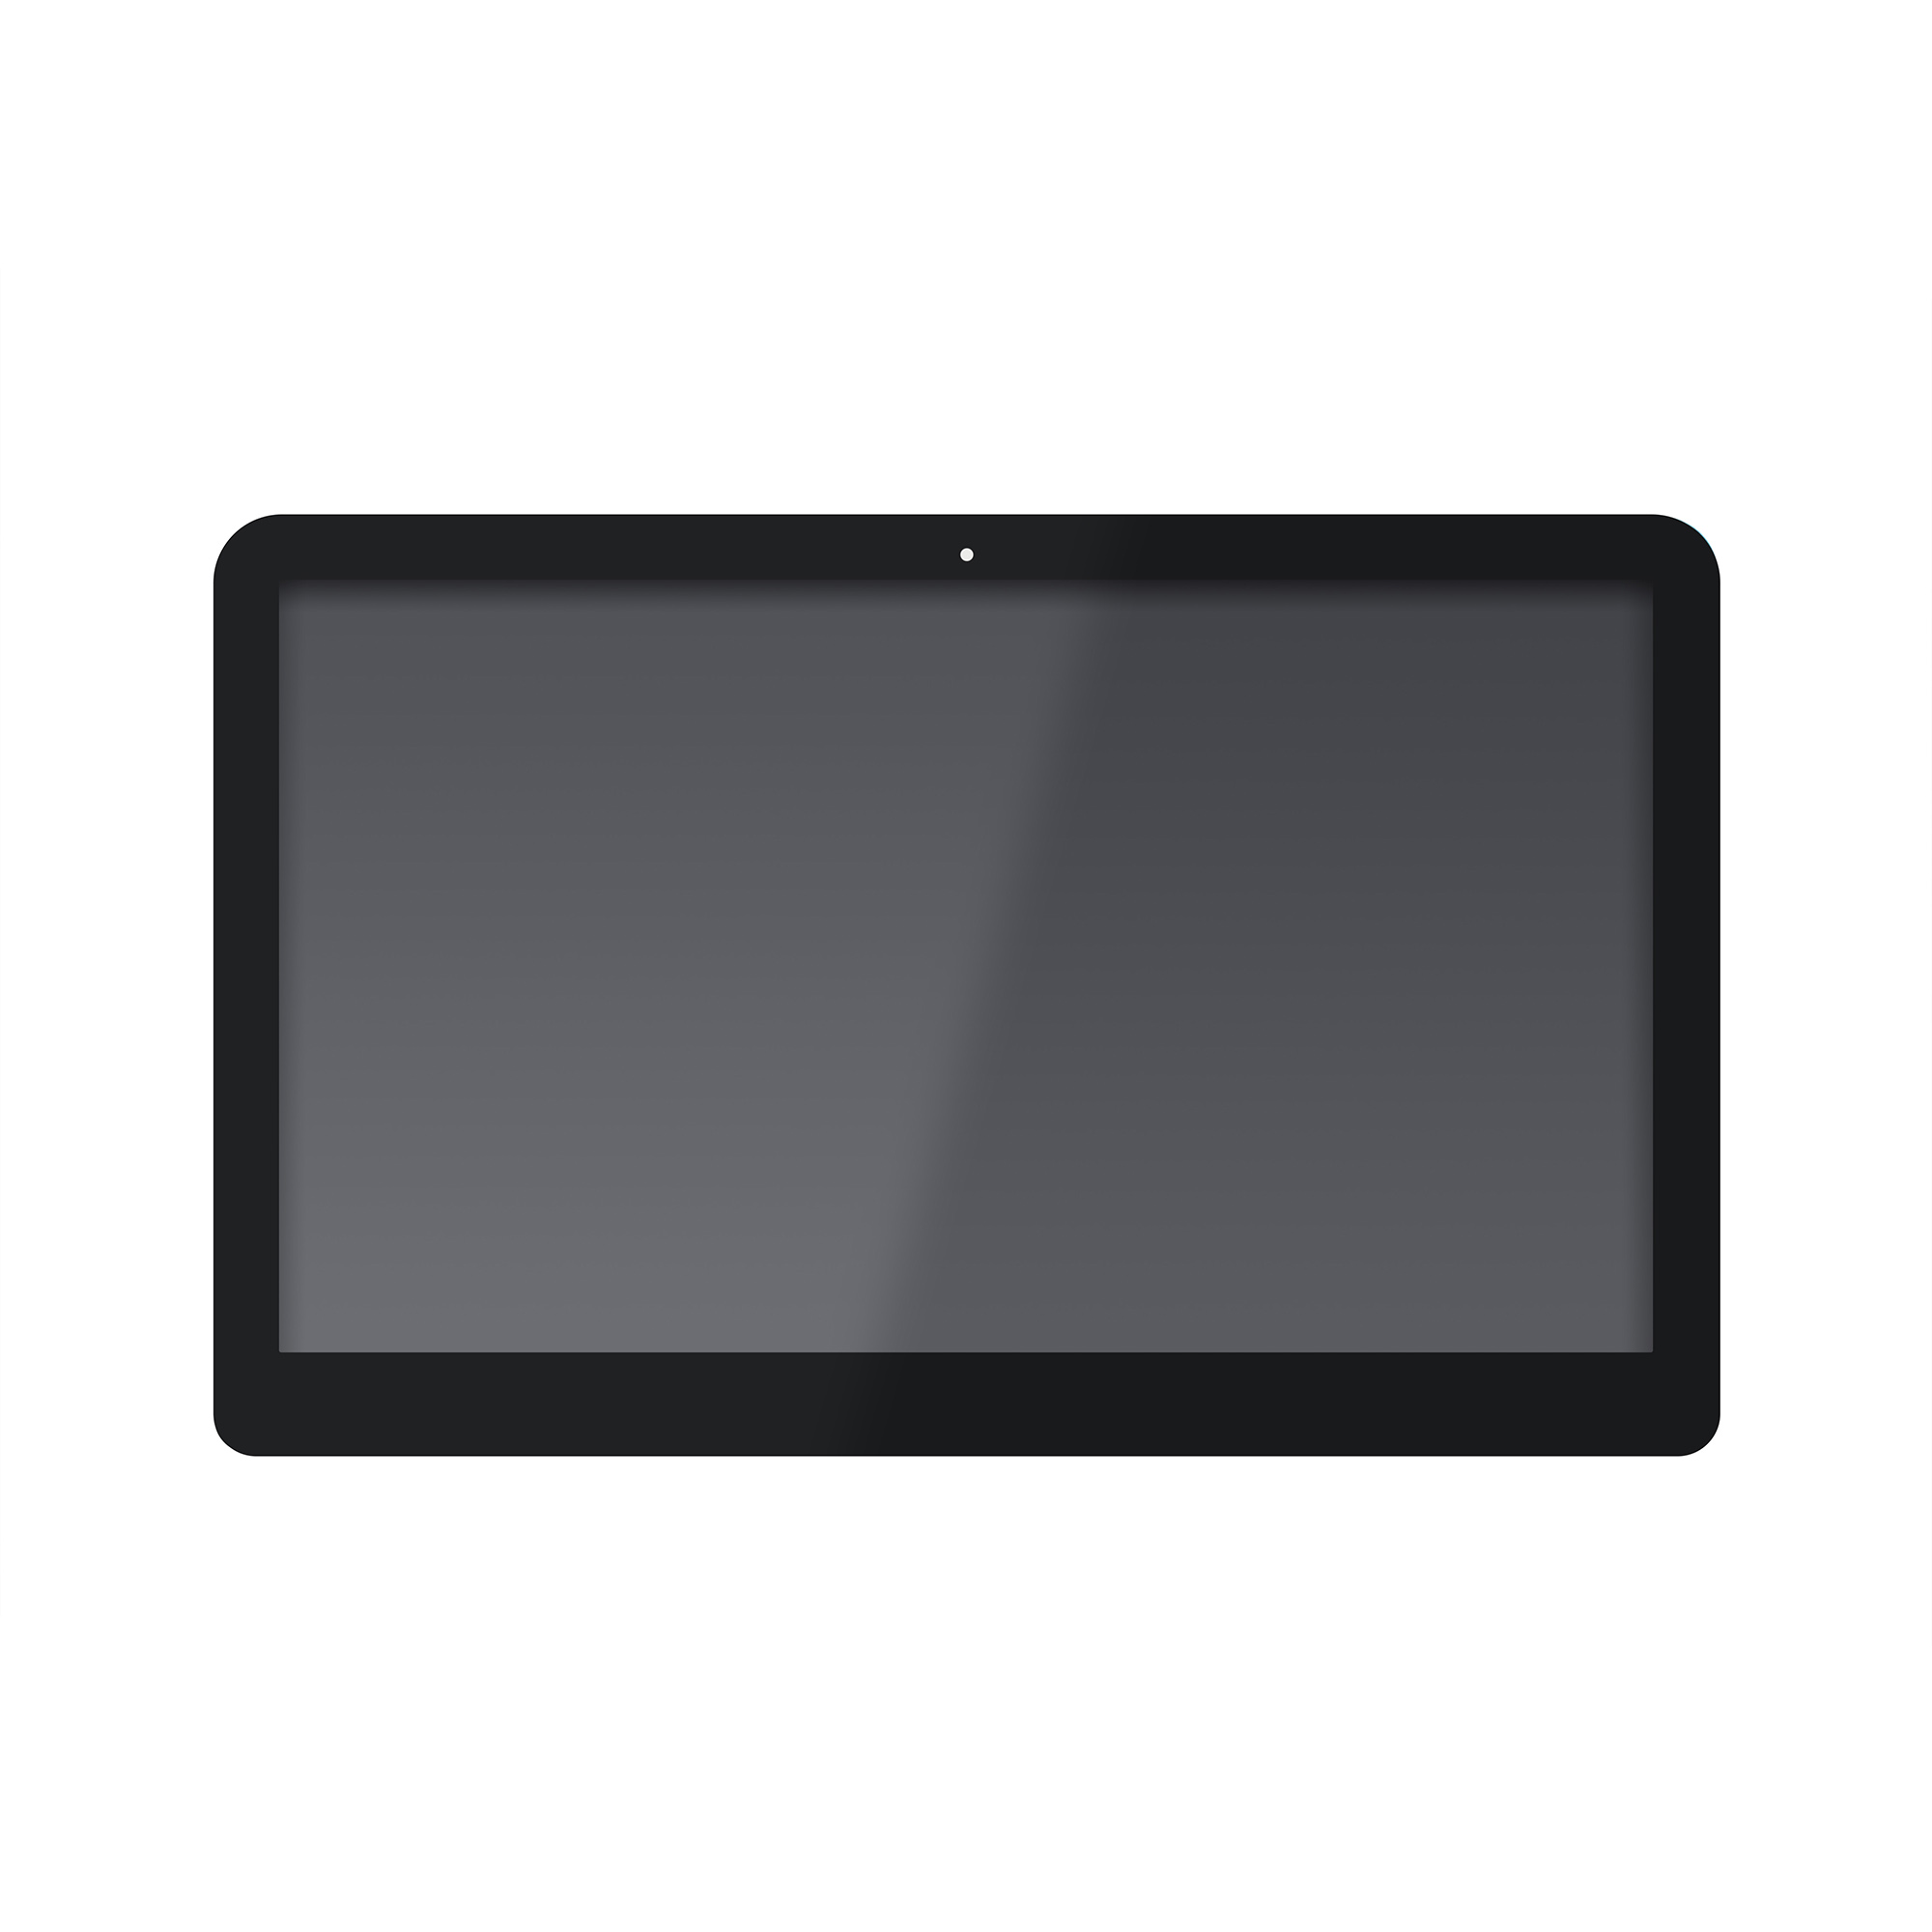 LCD <strong>Screen</strong> +Touch Digitizer Assembly For HP Envy X360 15t-w000 15t-<strong>w100</strong> 15t-w200 15-w267cl 15-w105wm 15-w010la